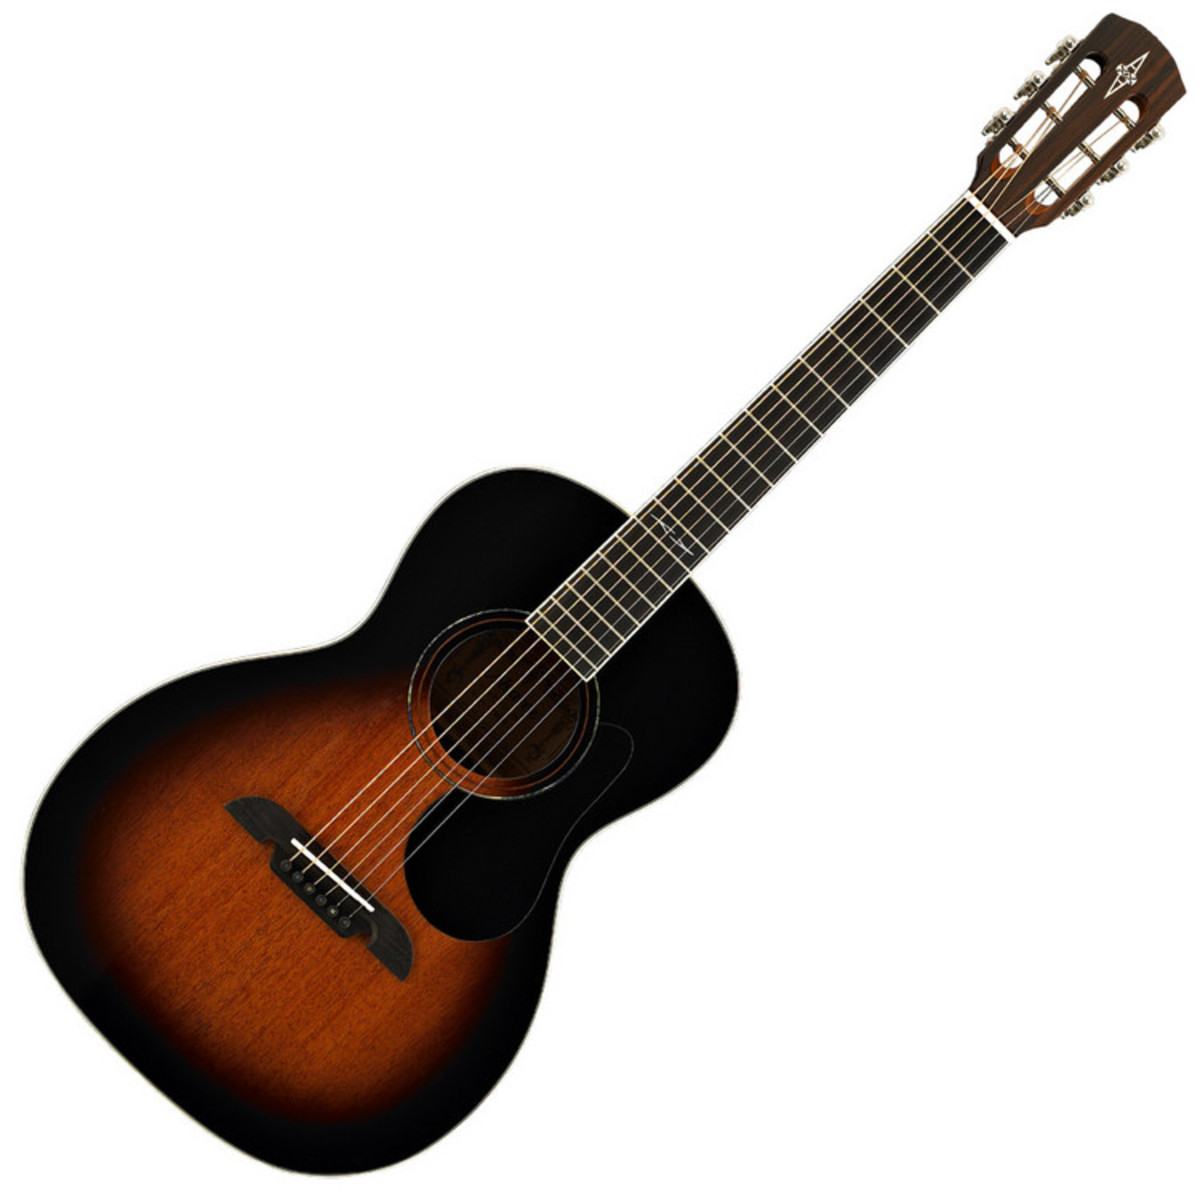 alvarez ap66 parlor acoustic guitar sunburst at. Black Bedroom Furniture Sets. Home Design Ideas